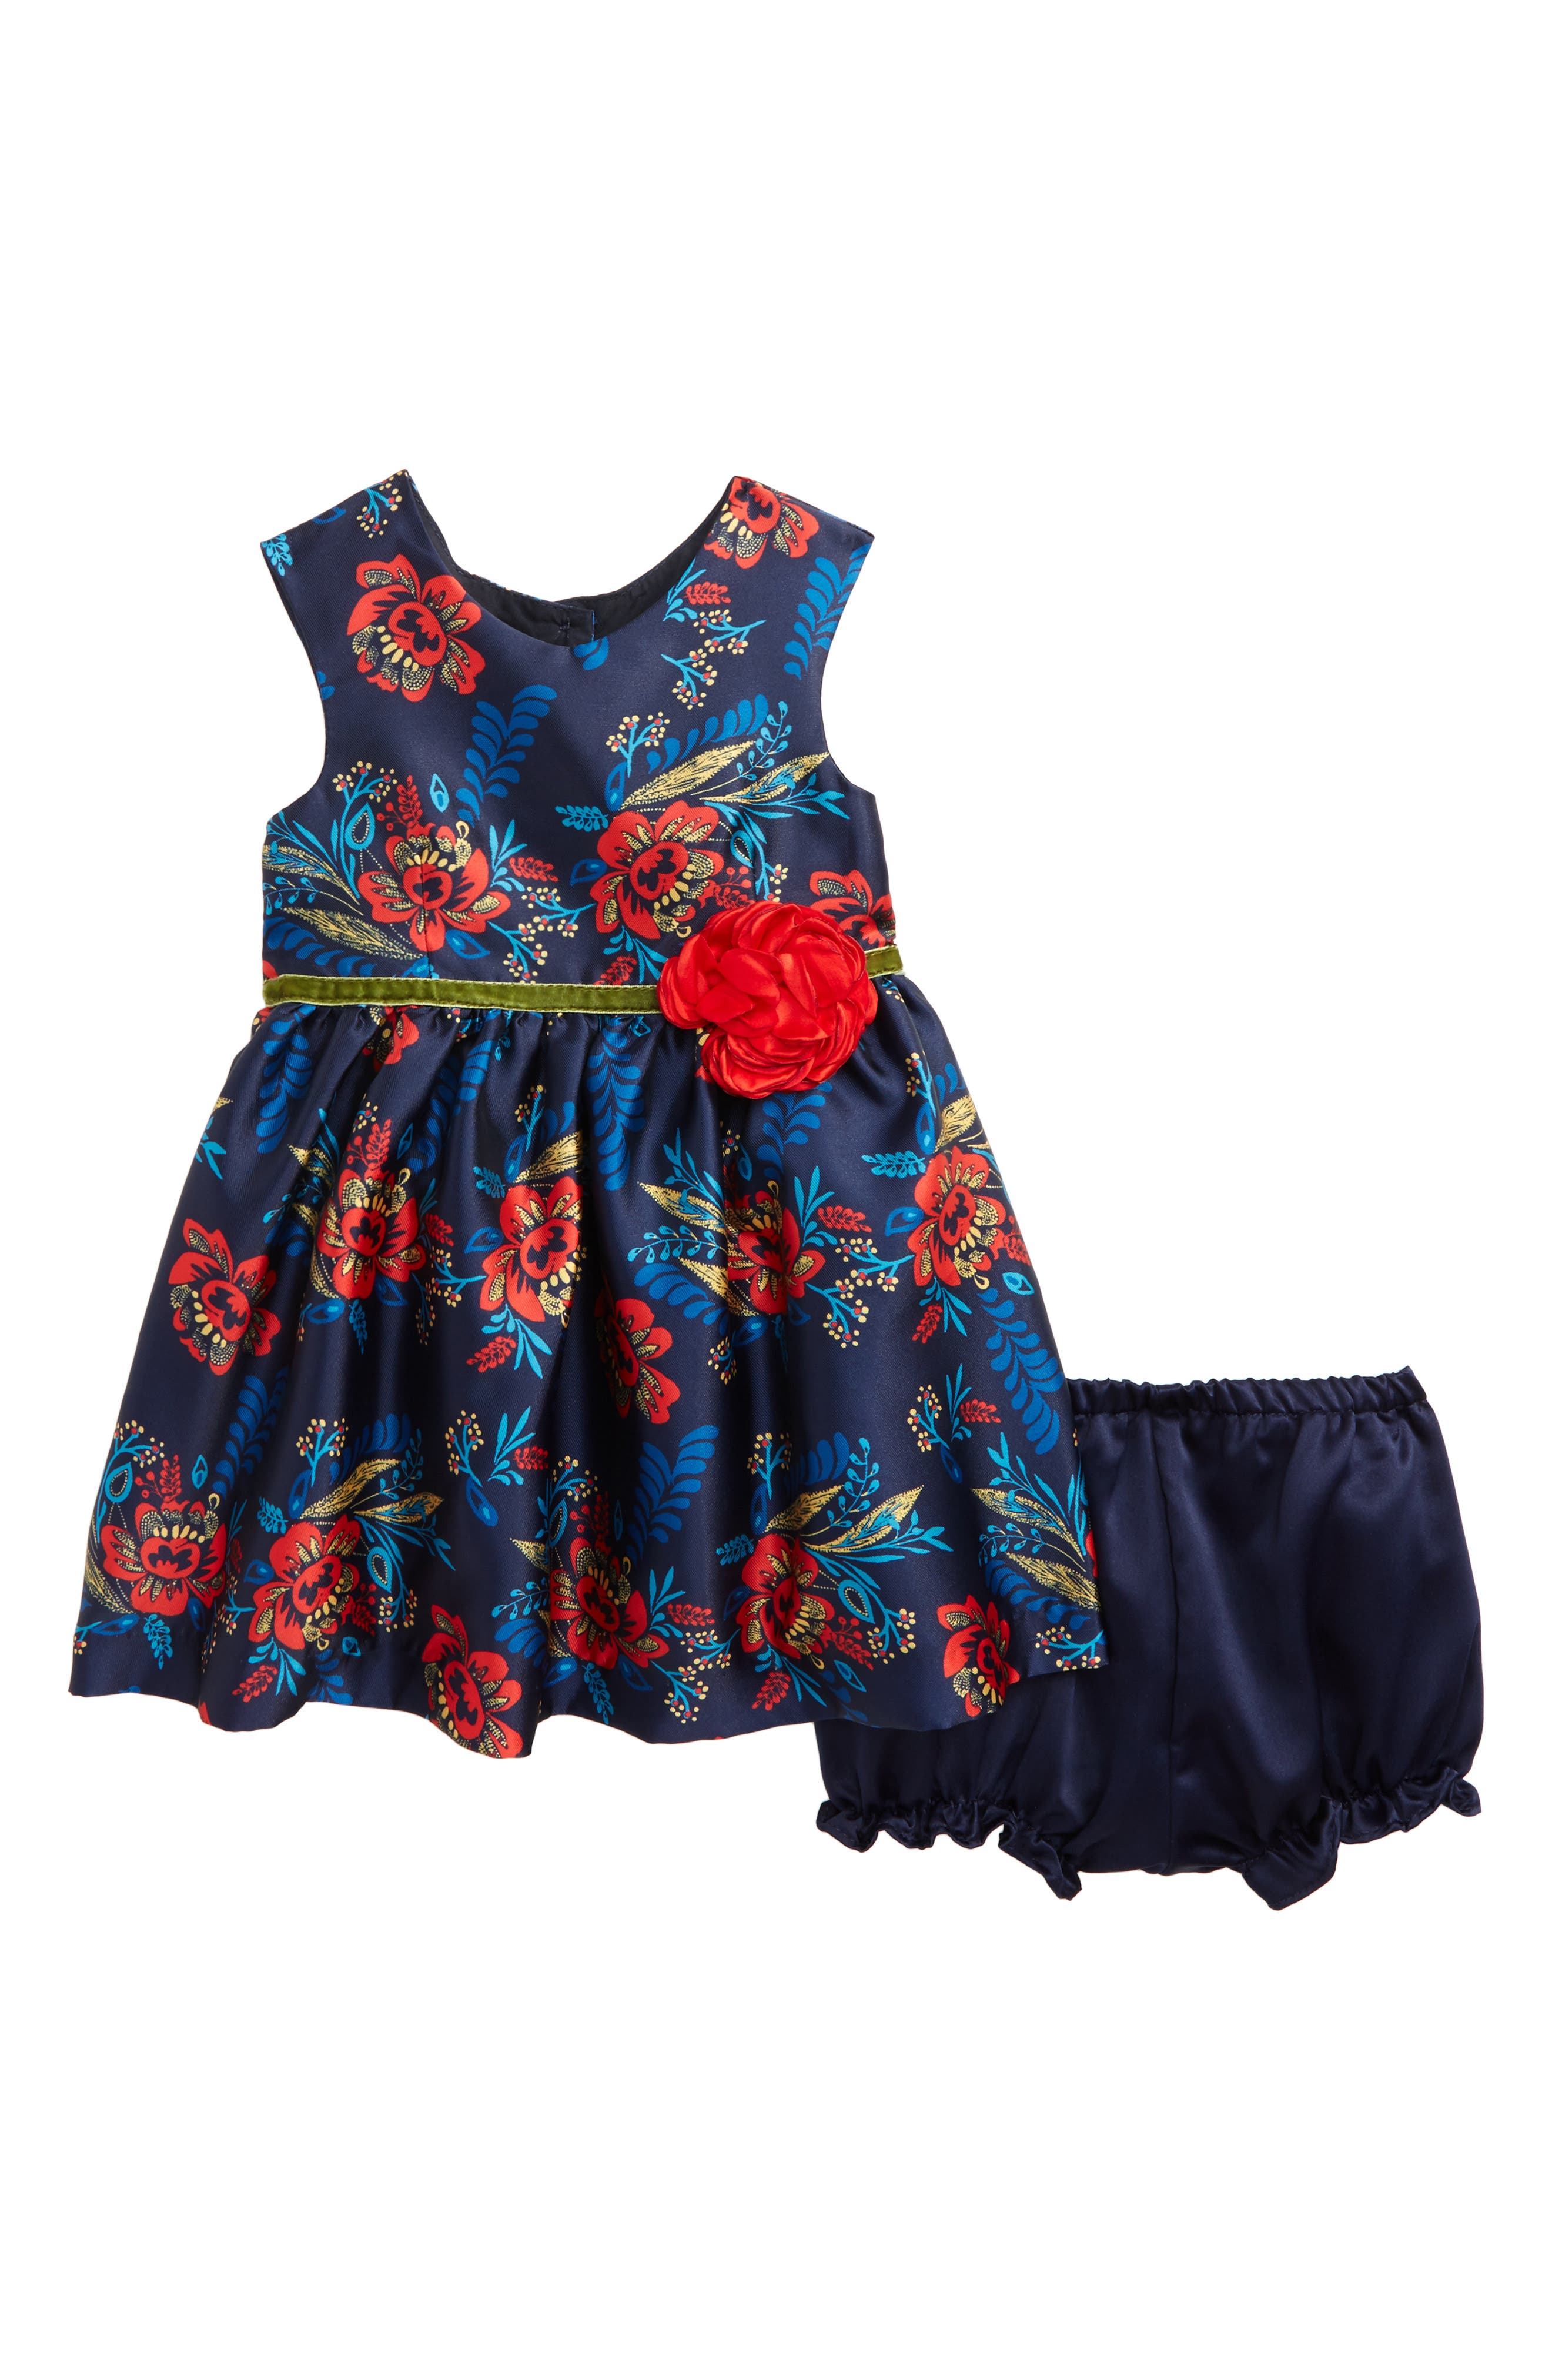 Alternate Image 1 Selected - Pippa & Julie Floral Print Fit & Flare Dress (Baby Girls)